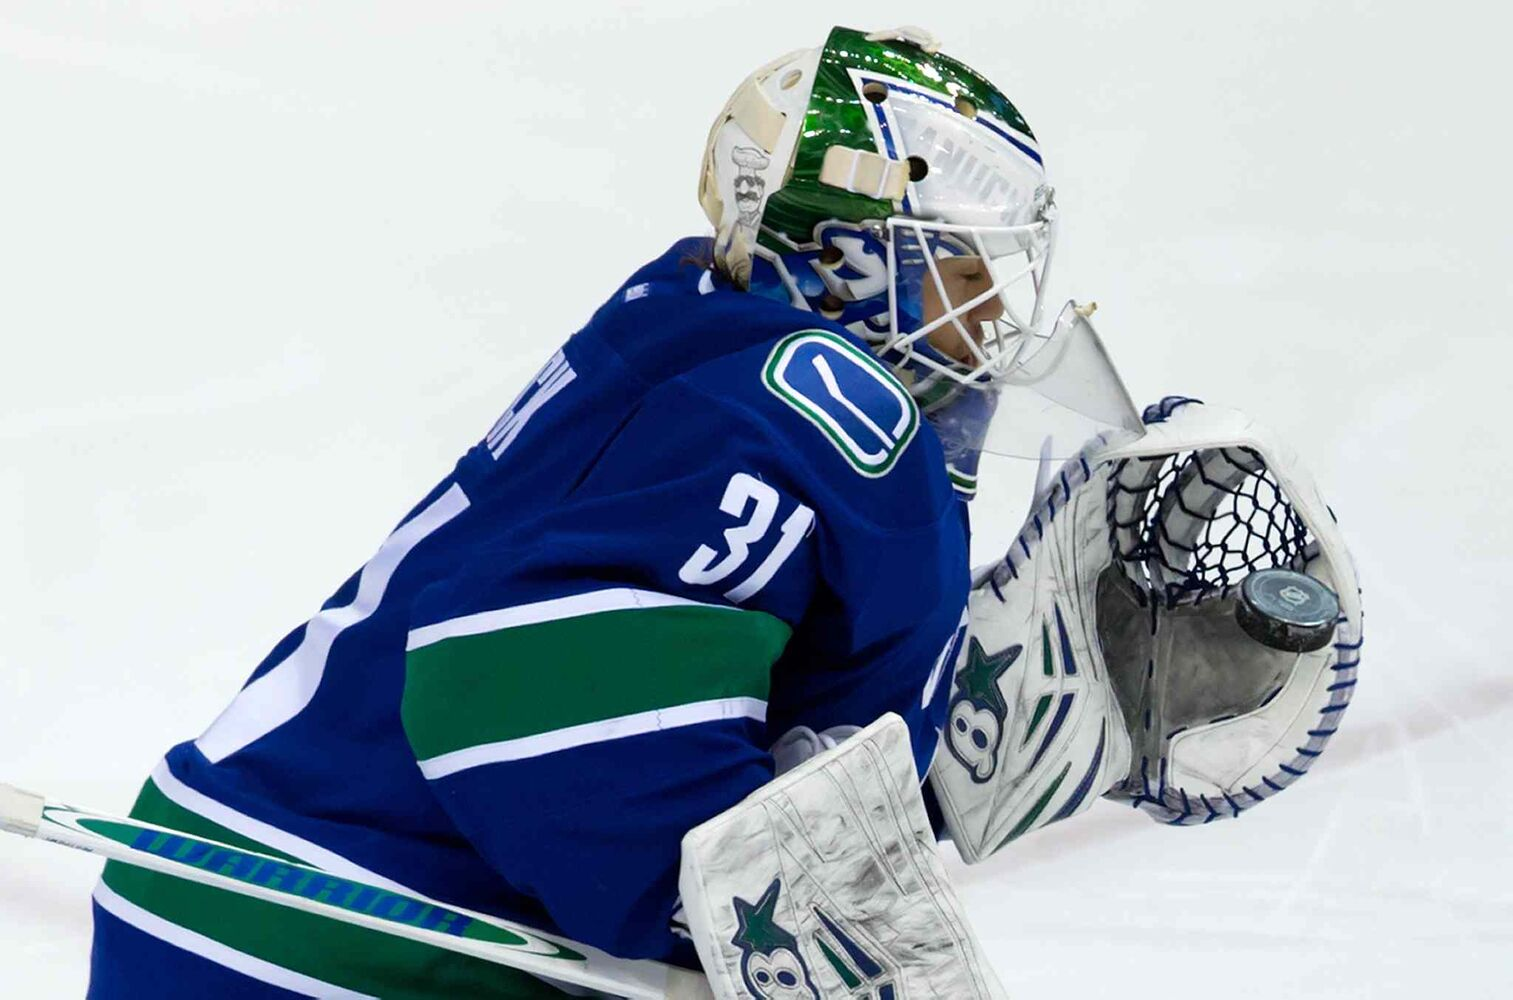 Vancouver Canucks goalie Eddie Lack makes a glove save against the Winnipeg Jets during the second period.